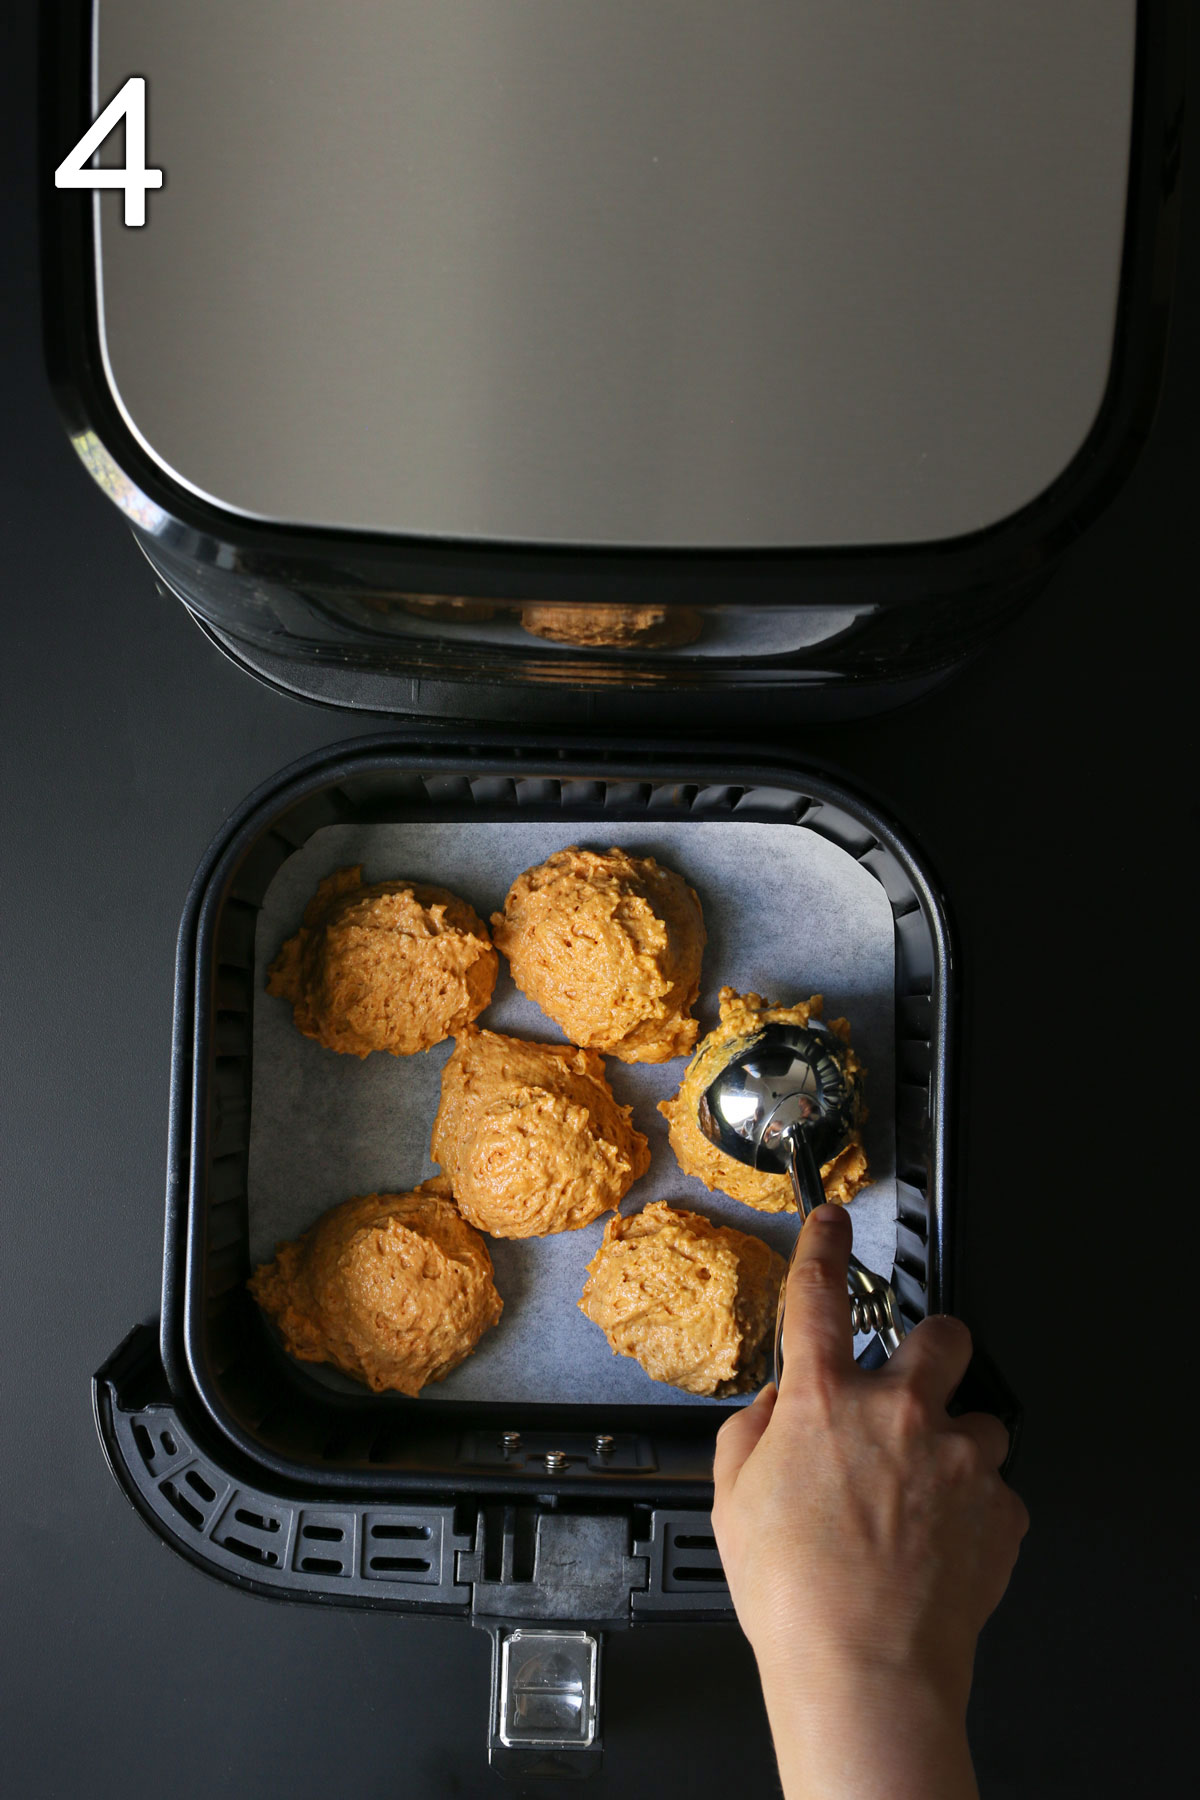 scooping batter into lined air fryer basket.